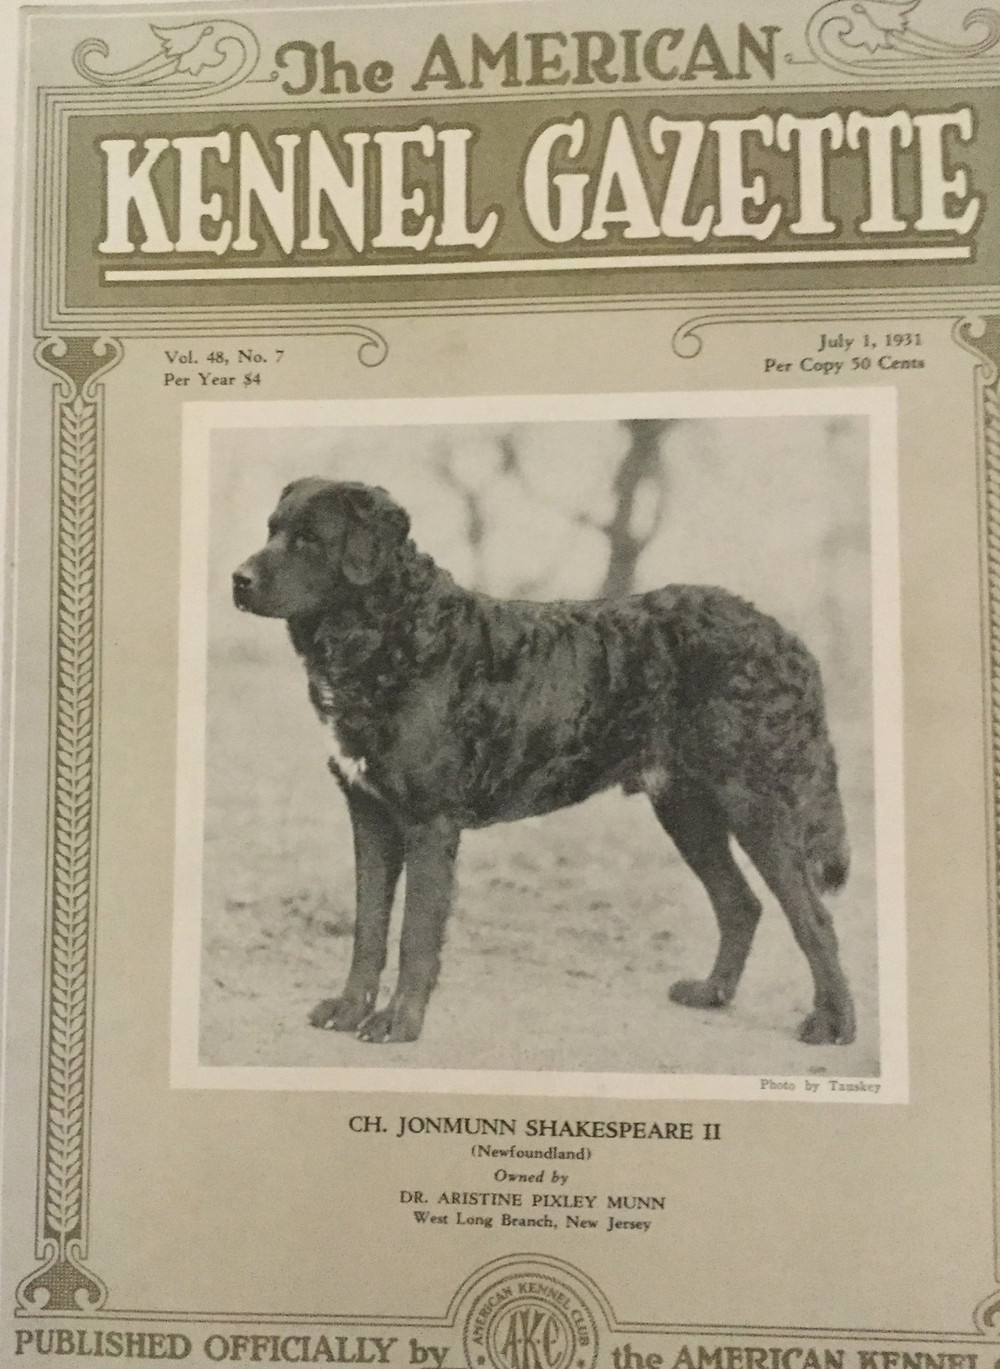 Cover of the 1925 AKC Gazette featuring Newfoundland dog Ch. Jonmunn Shakespeare.